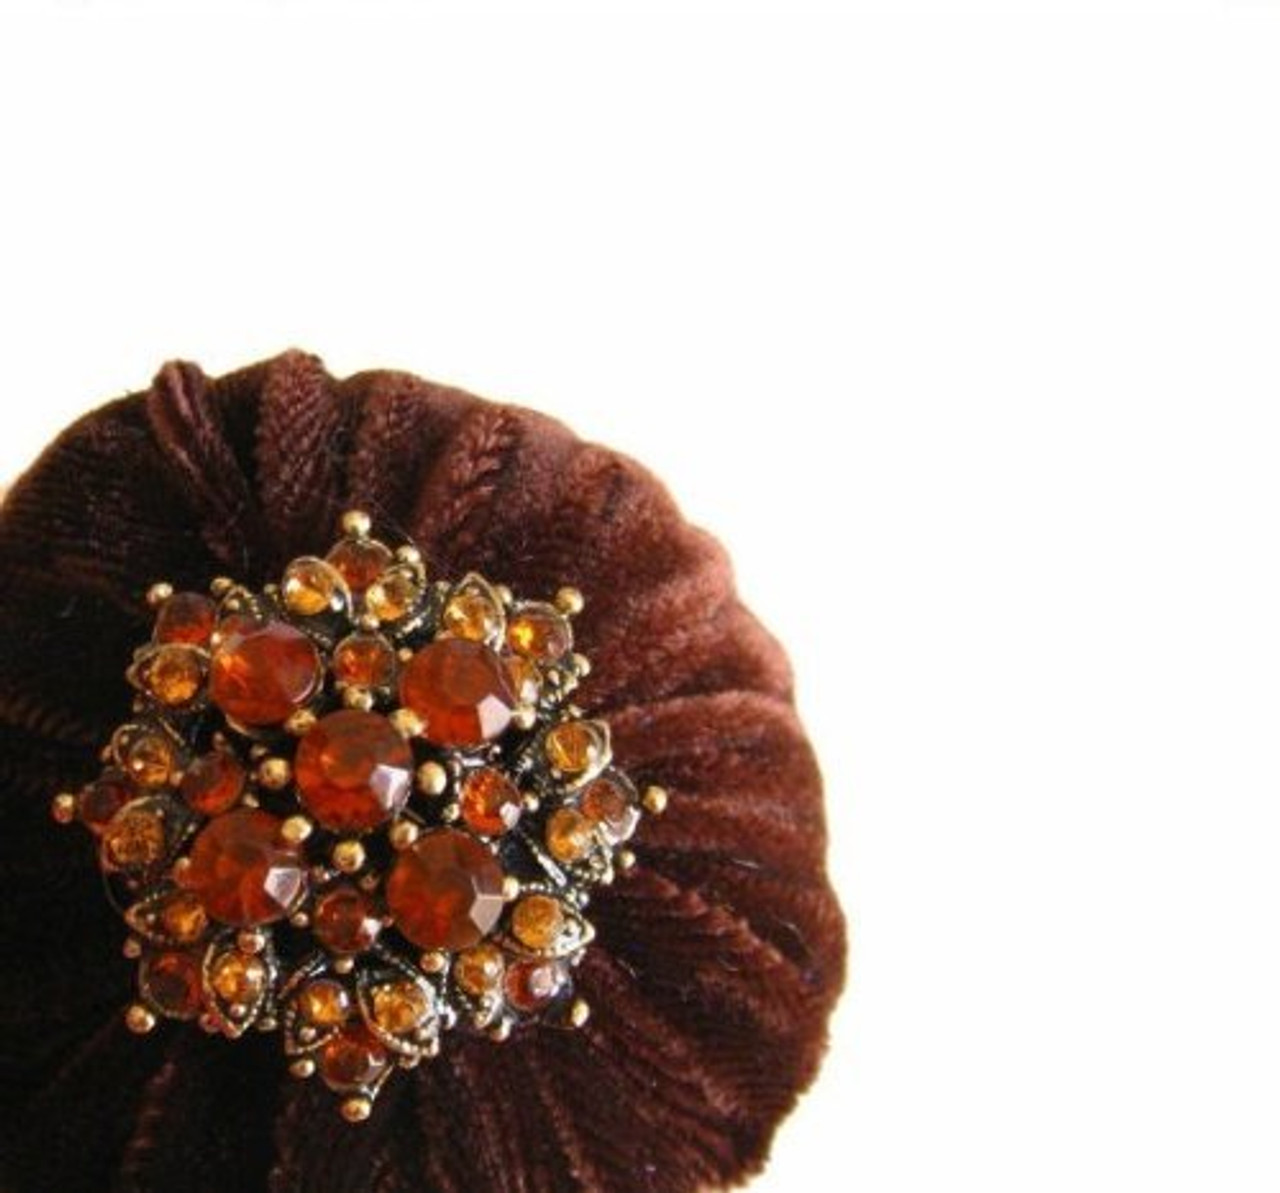 Brown Emery Pincushions to keep your needles clean and sharp